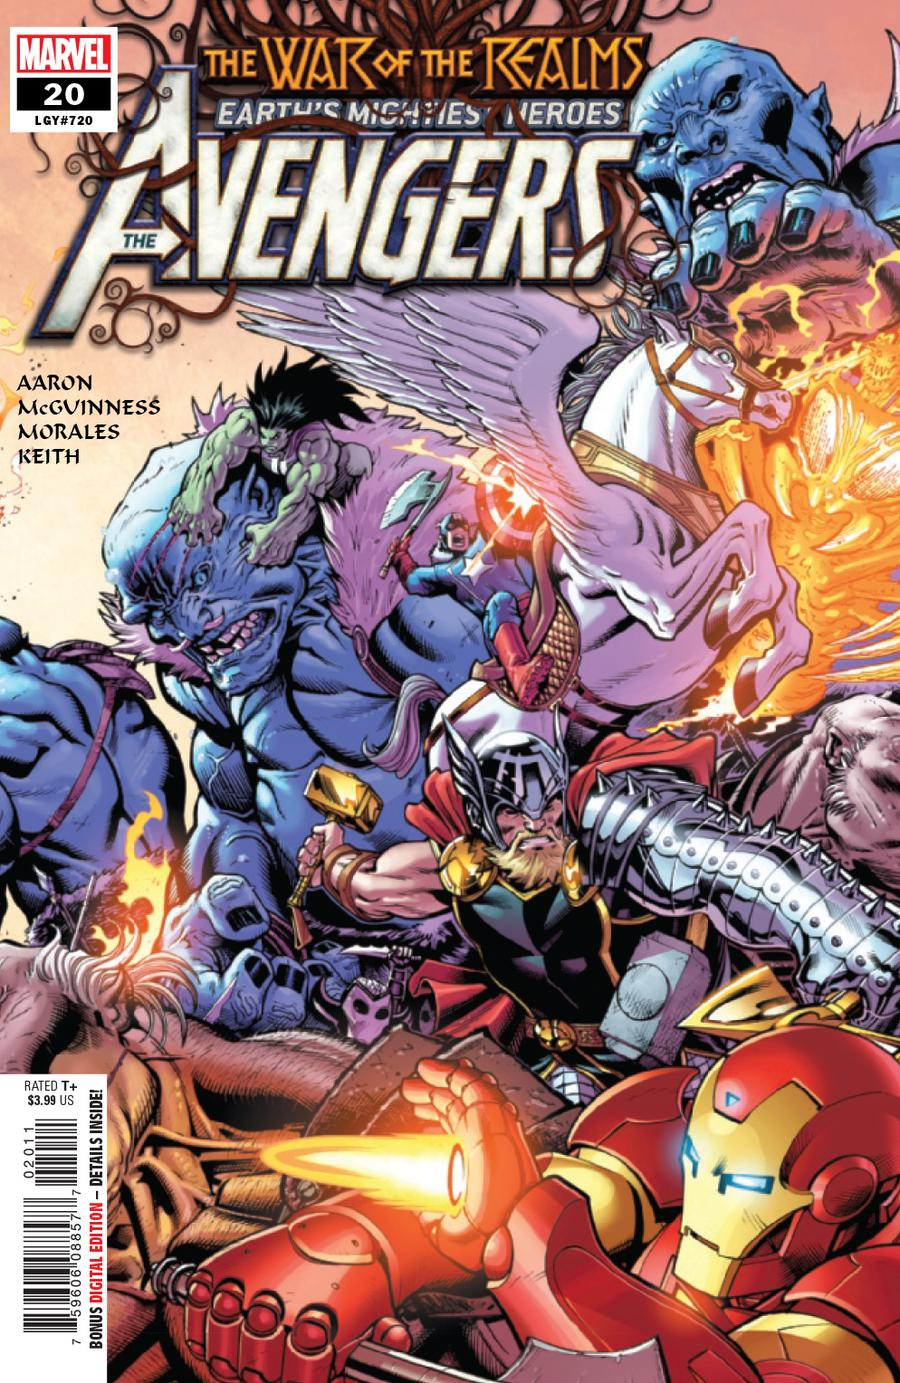 Avengers Vol 7 #20 Cover A Regular Ed McGuinness Cover (War Of The Realms Tie-In)